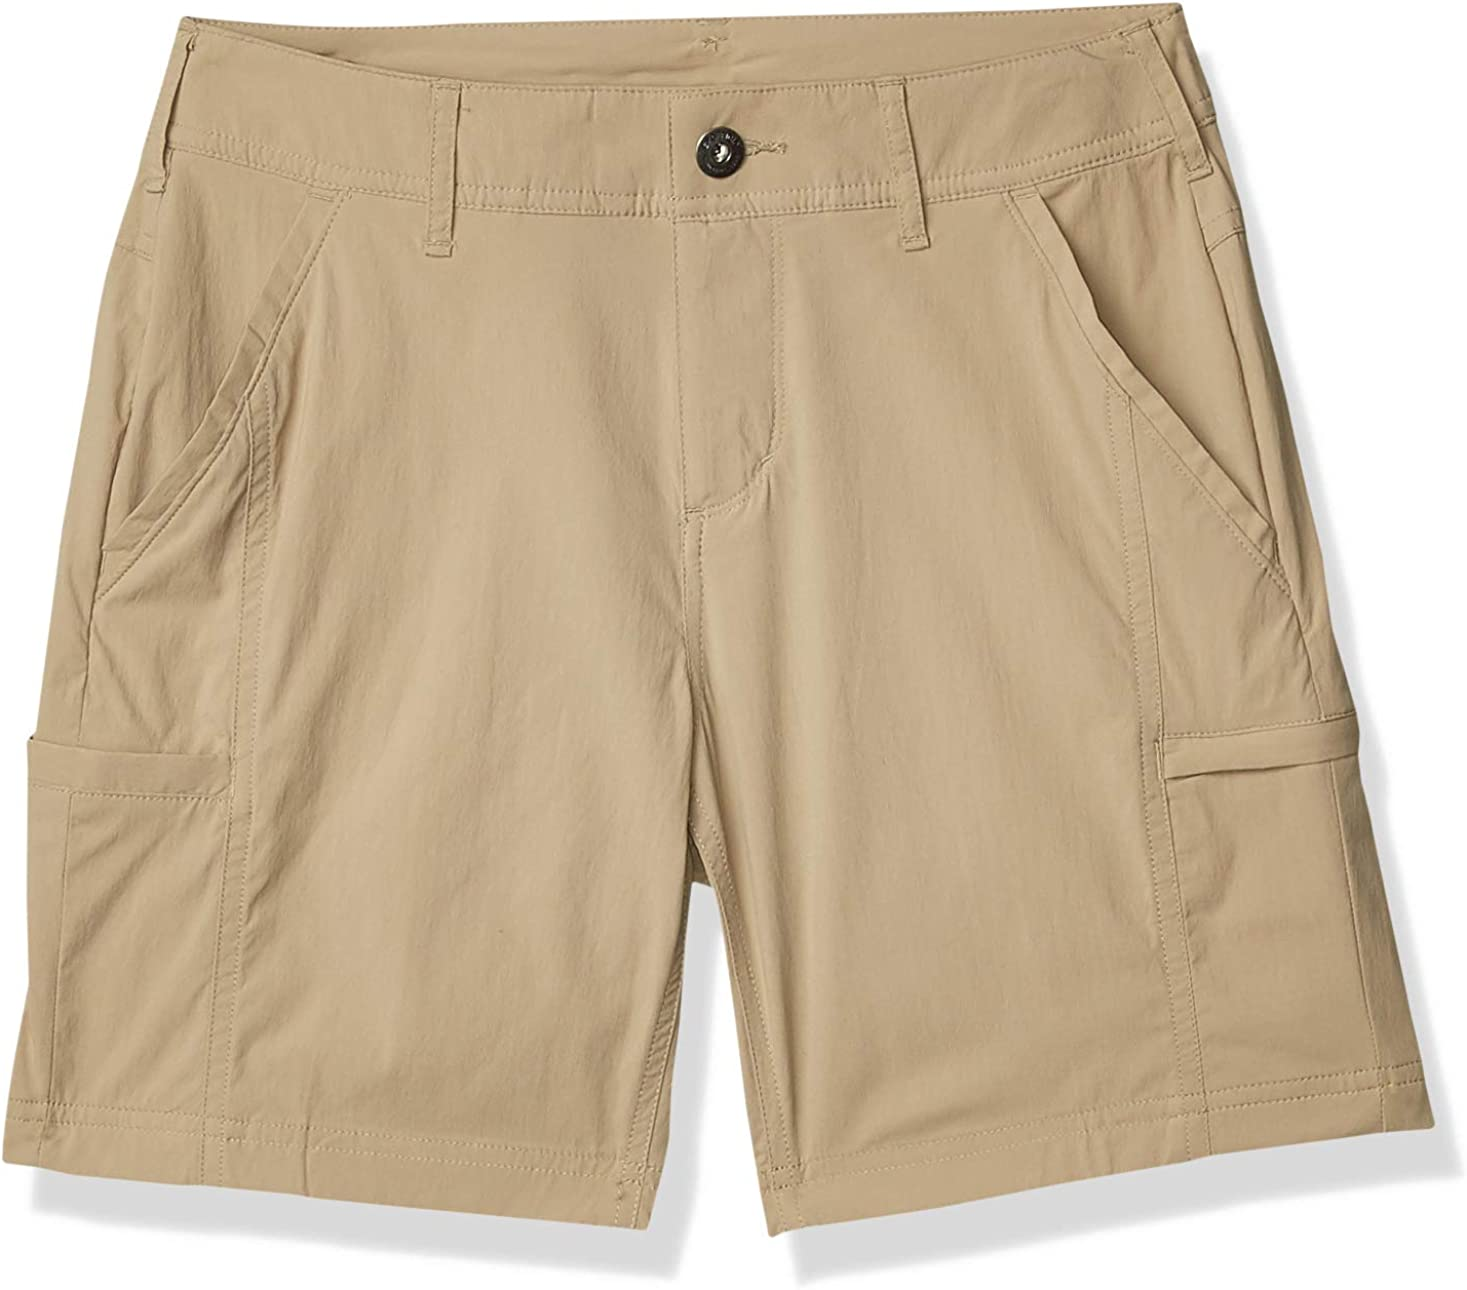 National products ExOfficio Womens Nomad Recommended Shorts 7